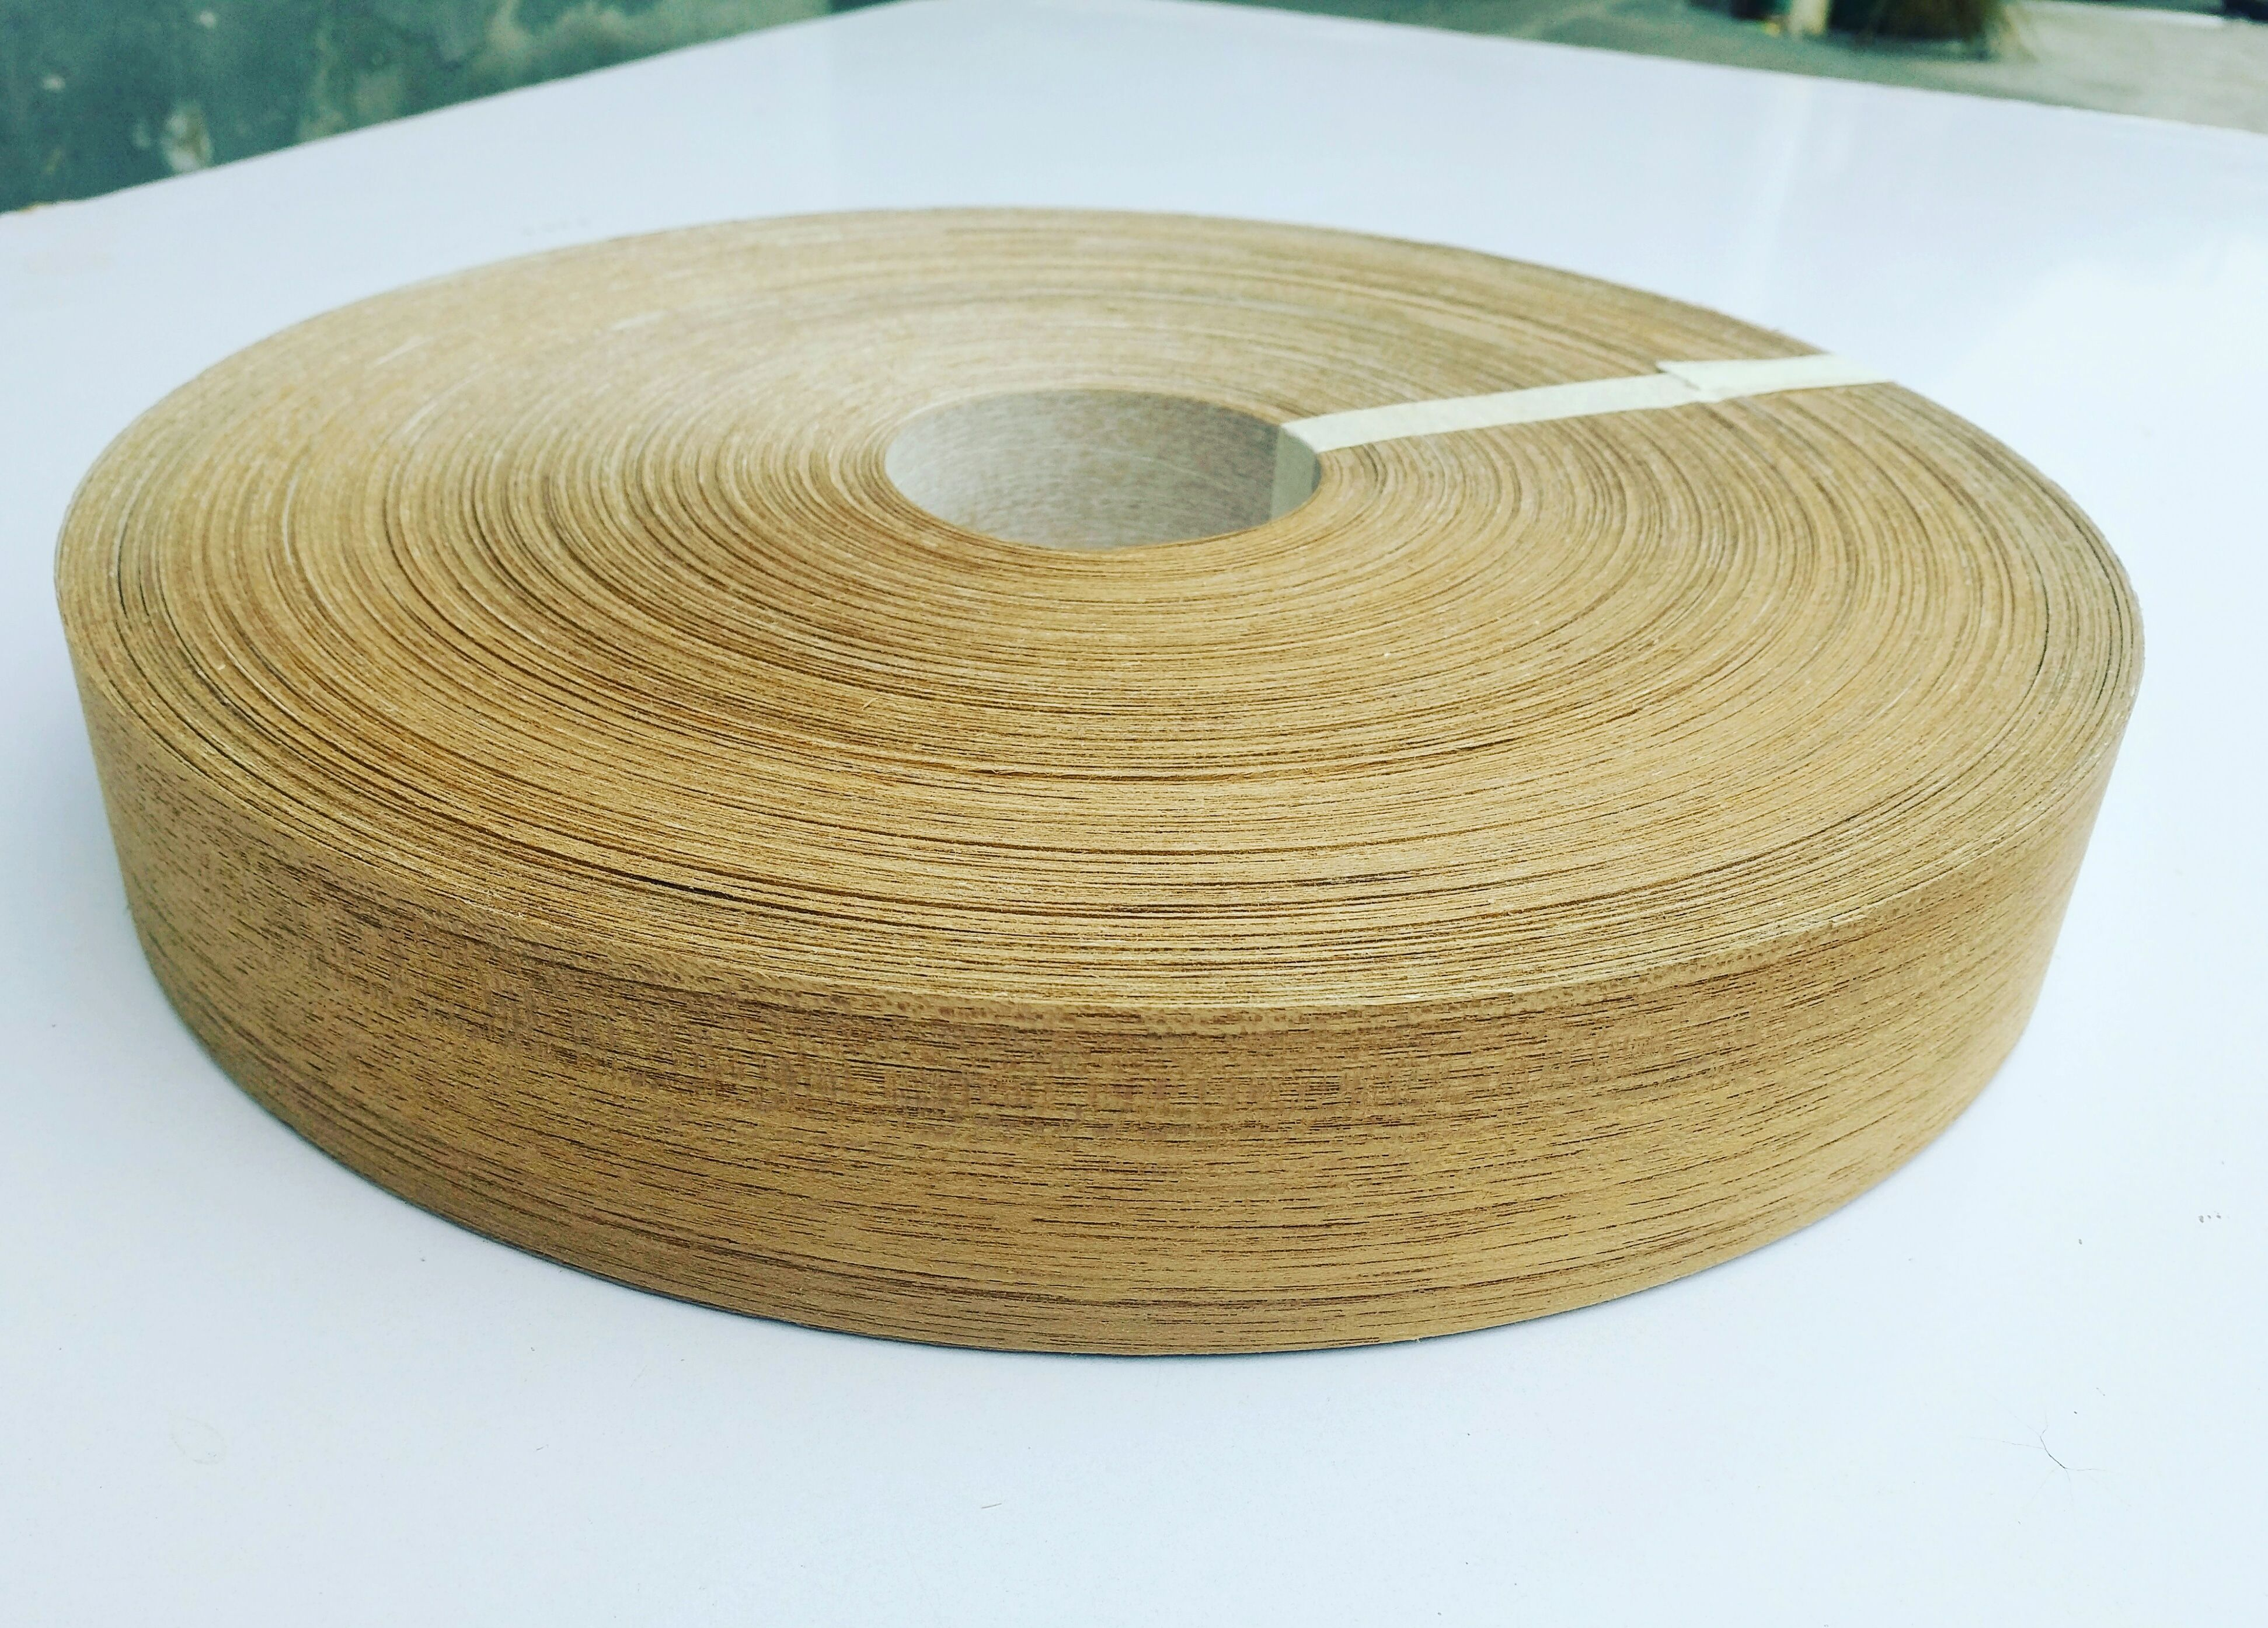 Burma Teak Wood Veneer Edgebanding Invisiable Finger